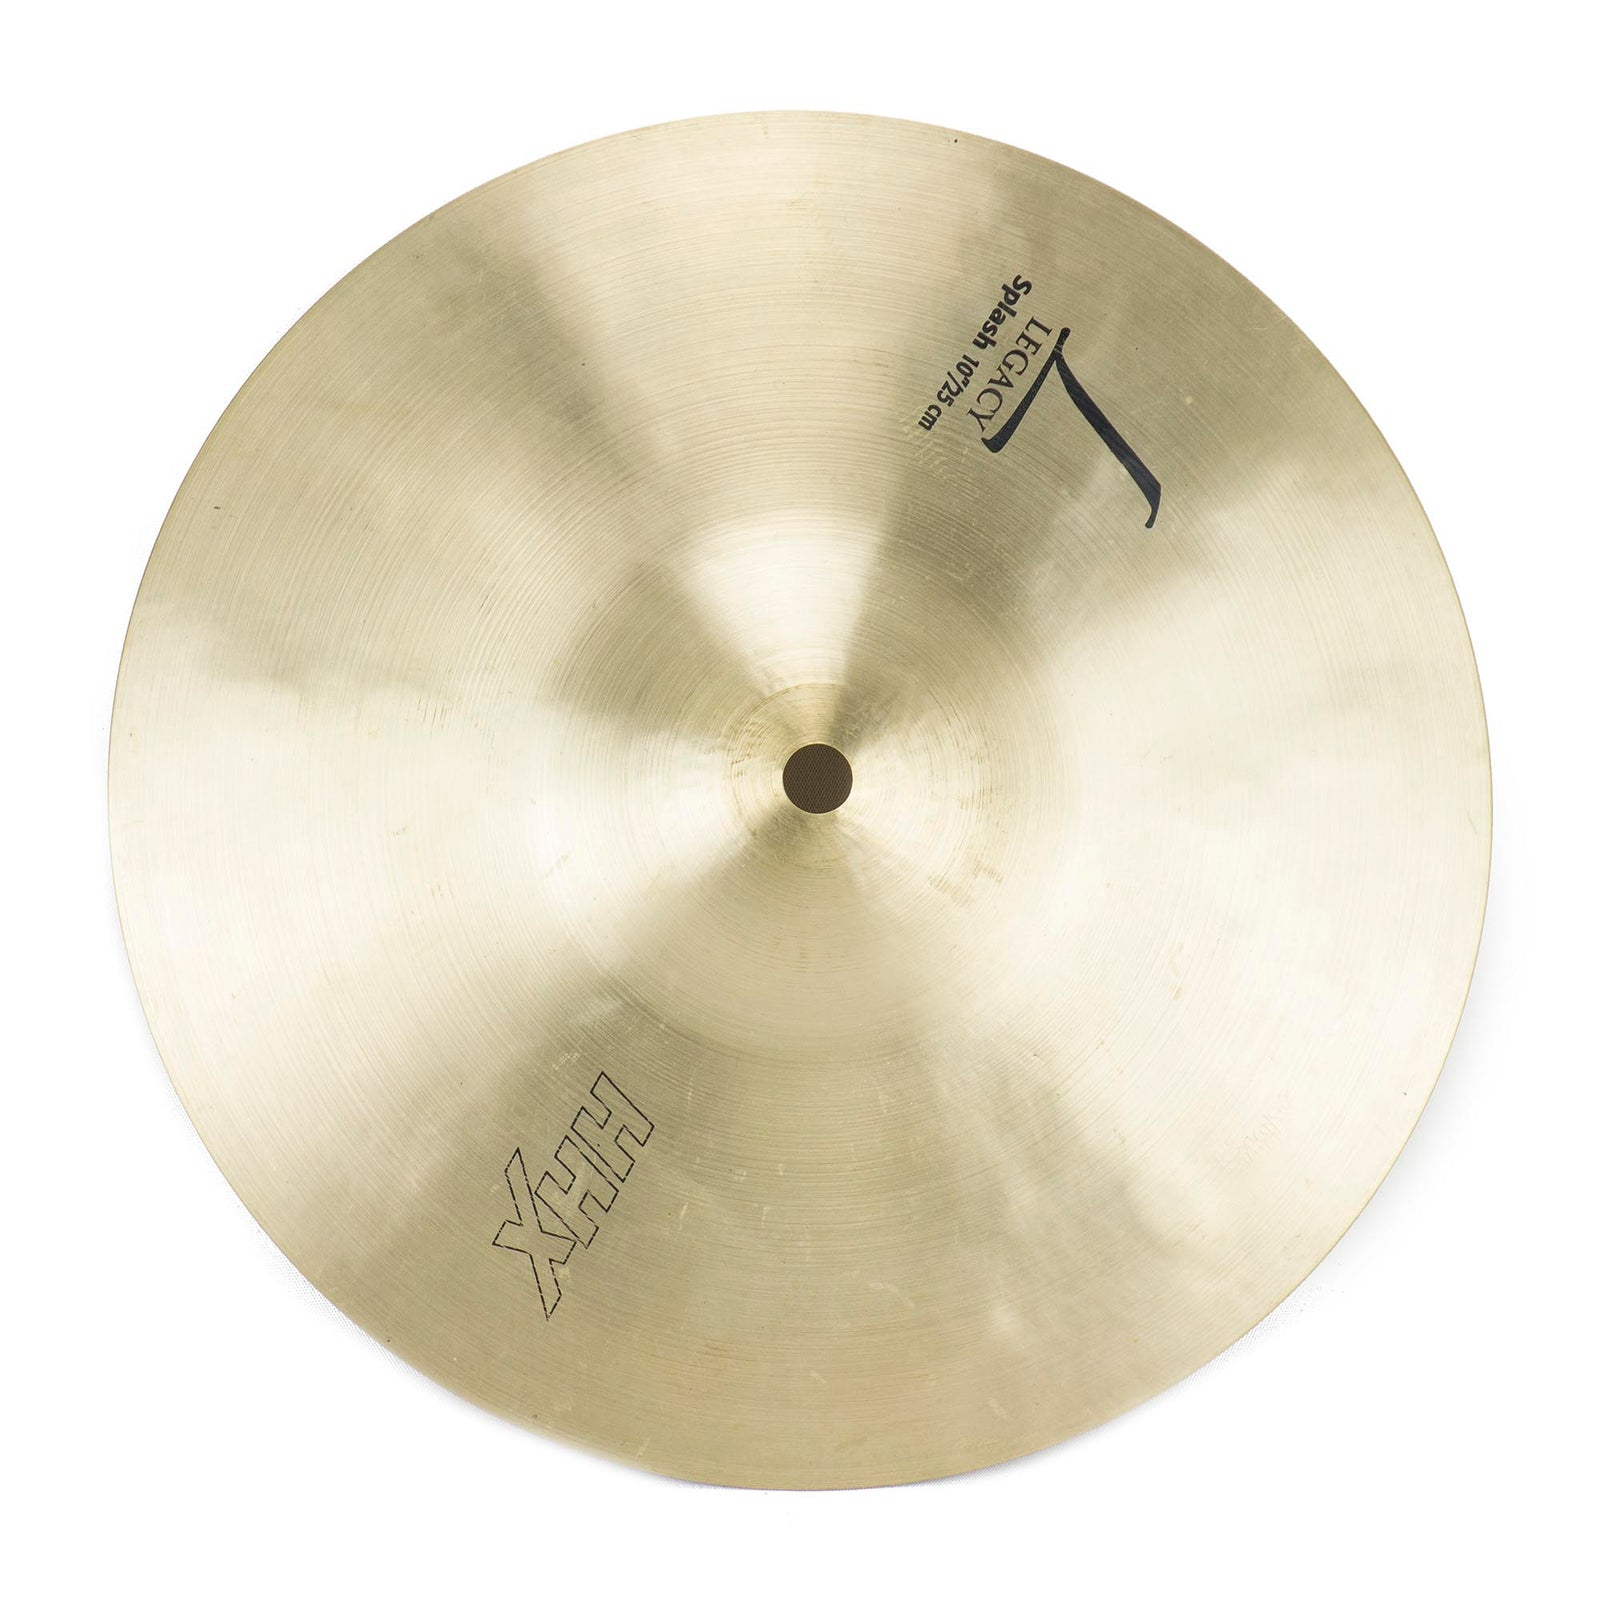 "Sabian 10"" Legacy Splash - Used"